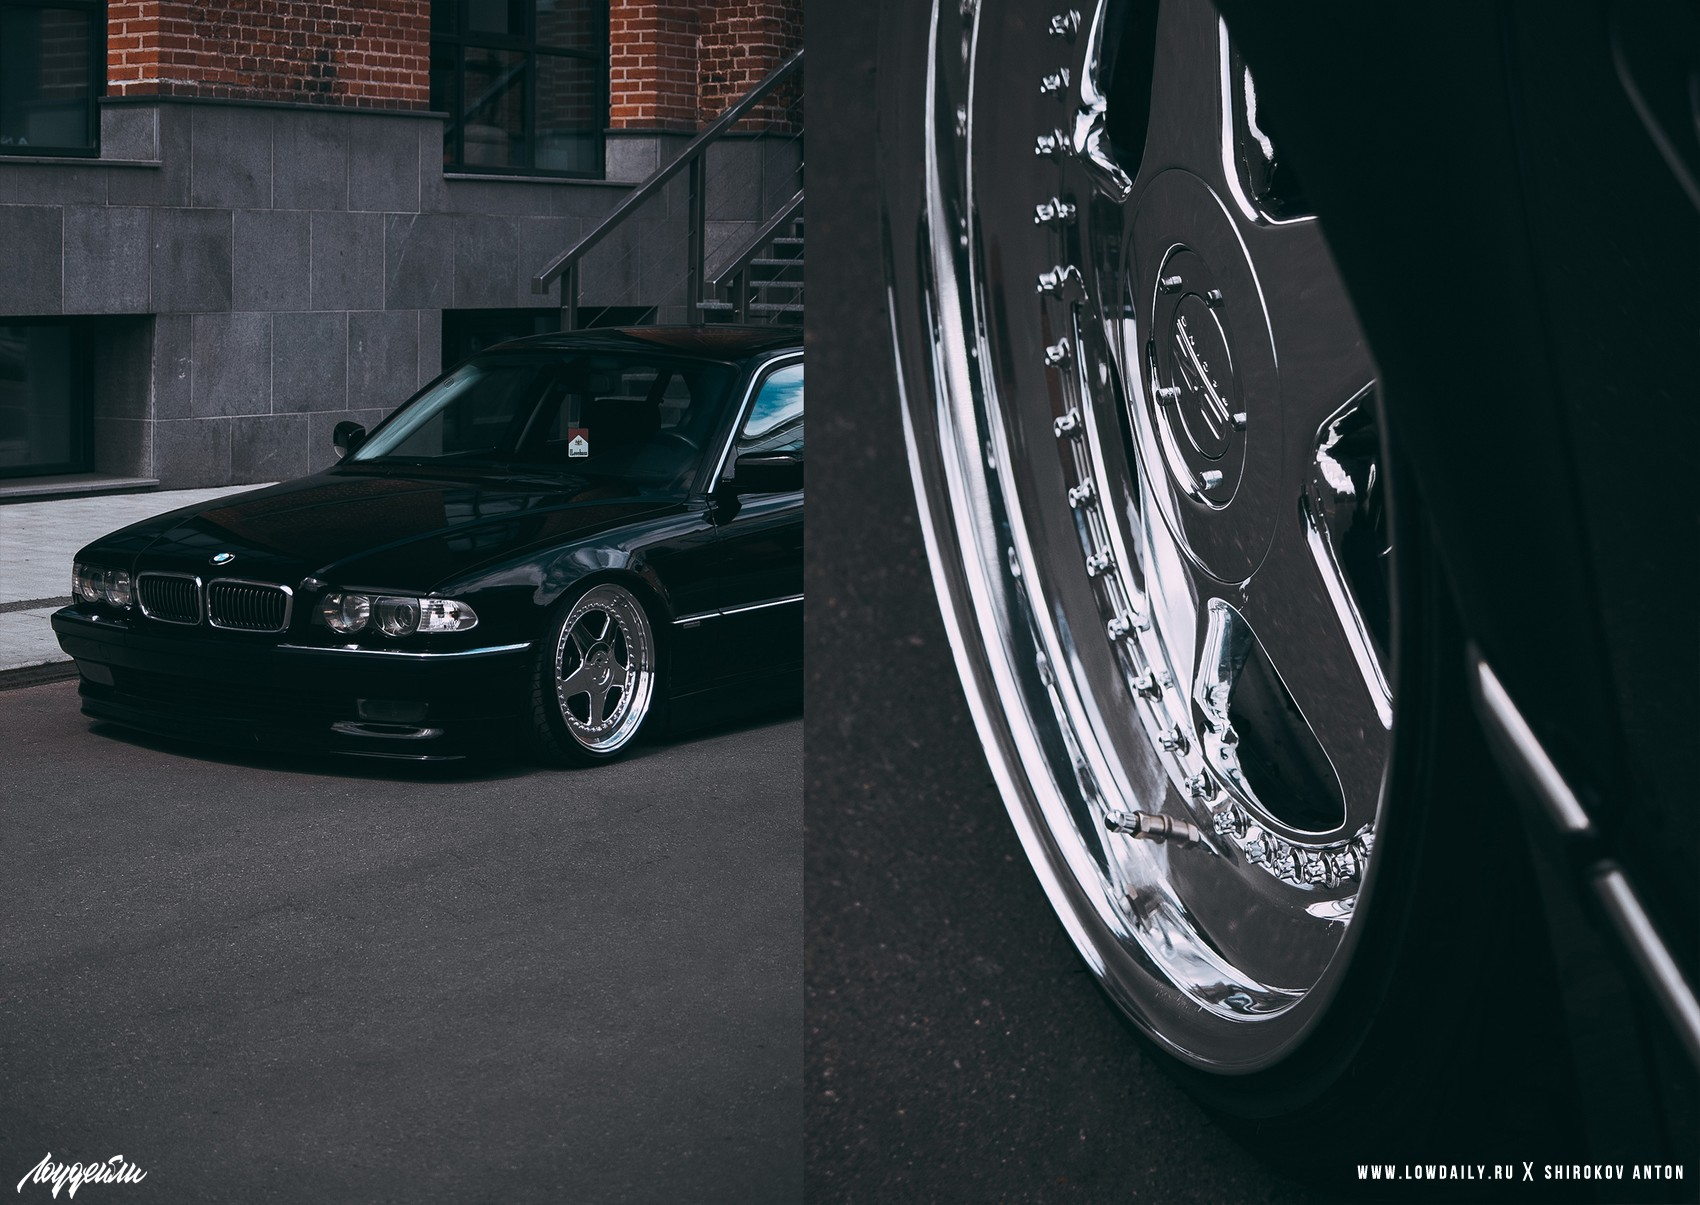 BMW E38 Lowdaily _MG_7096_12ddsa